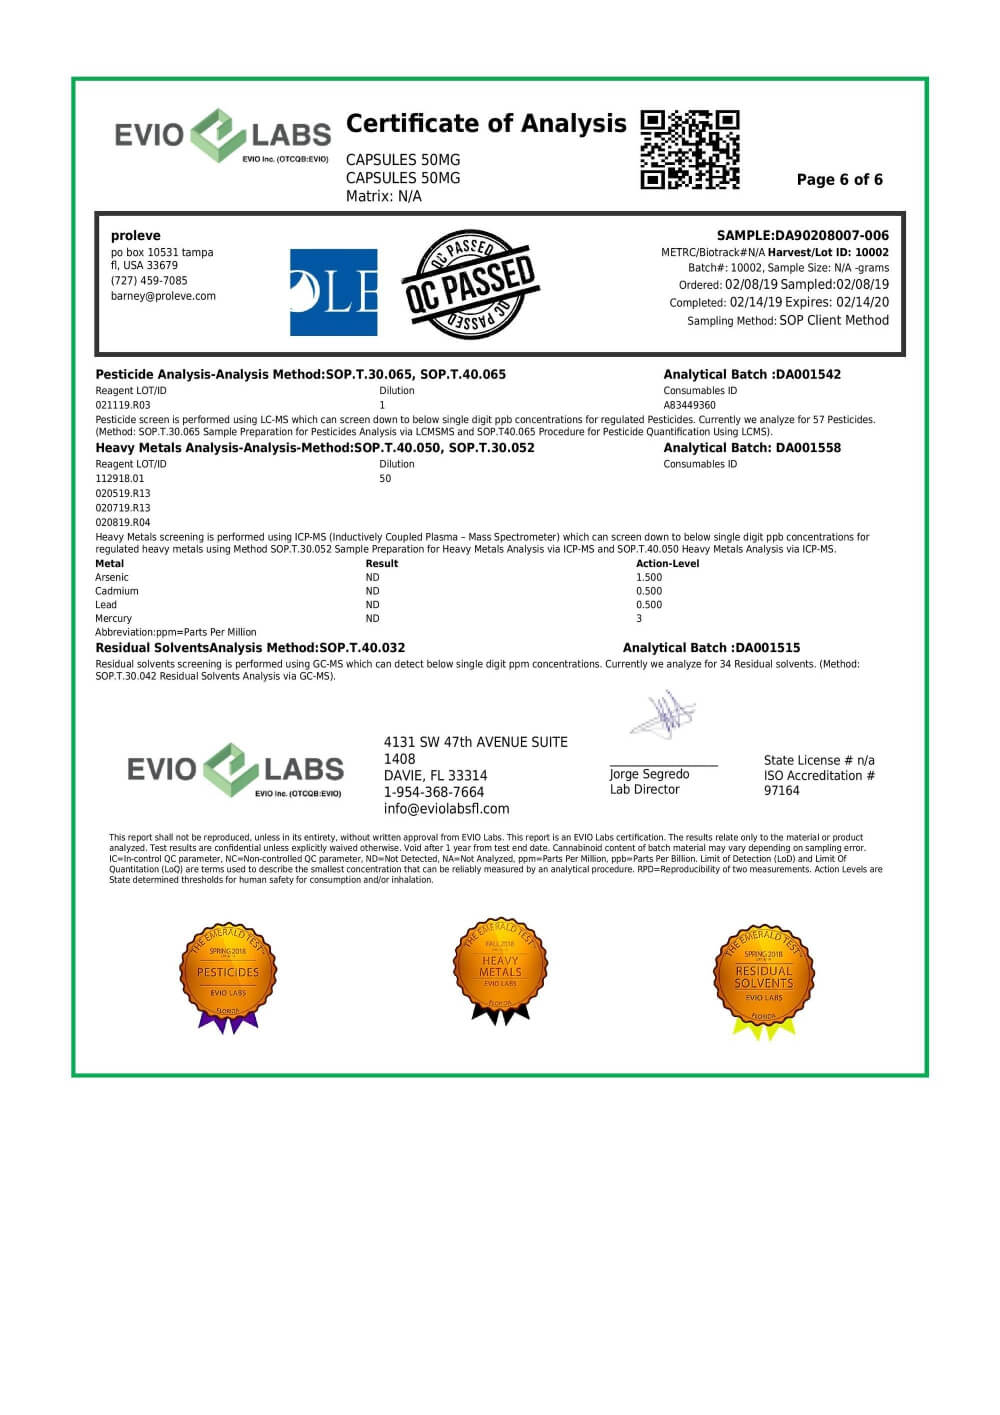 Proleve CBD Concentrate Isolate Capsule 50mg Lab Report